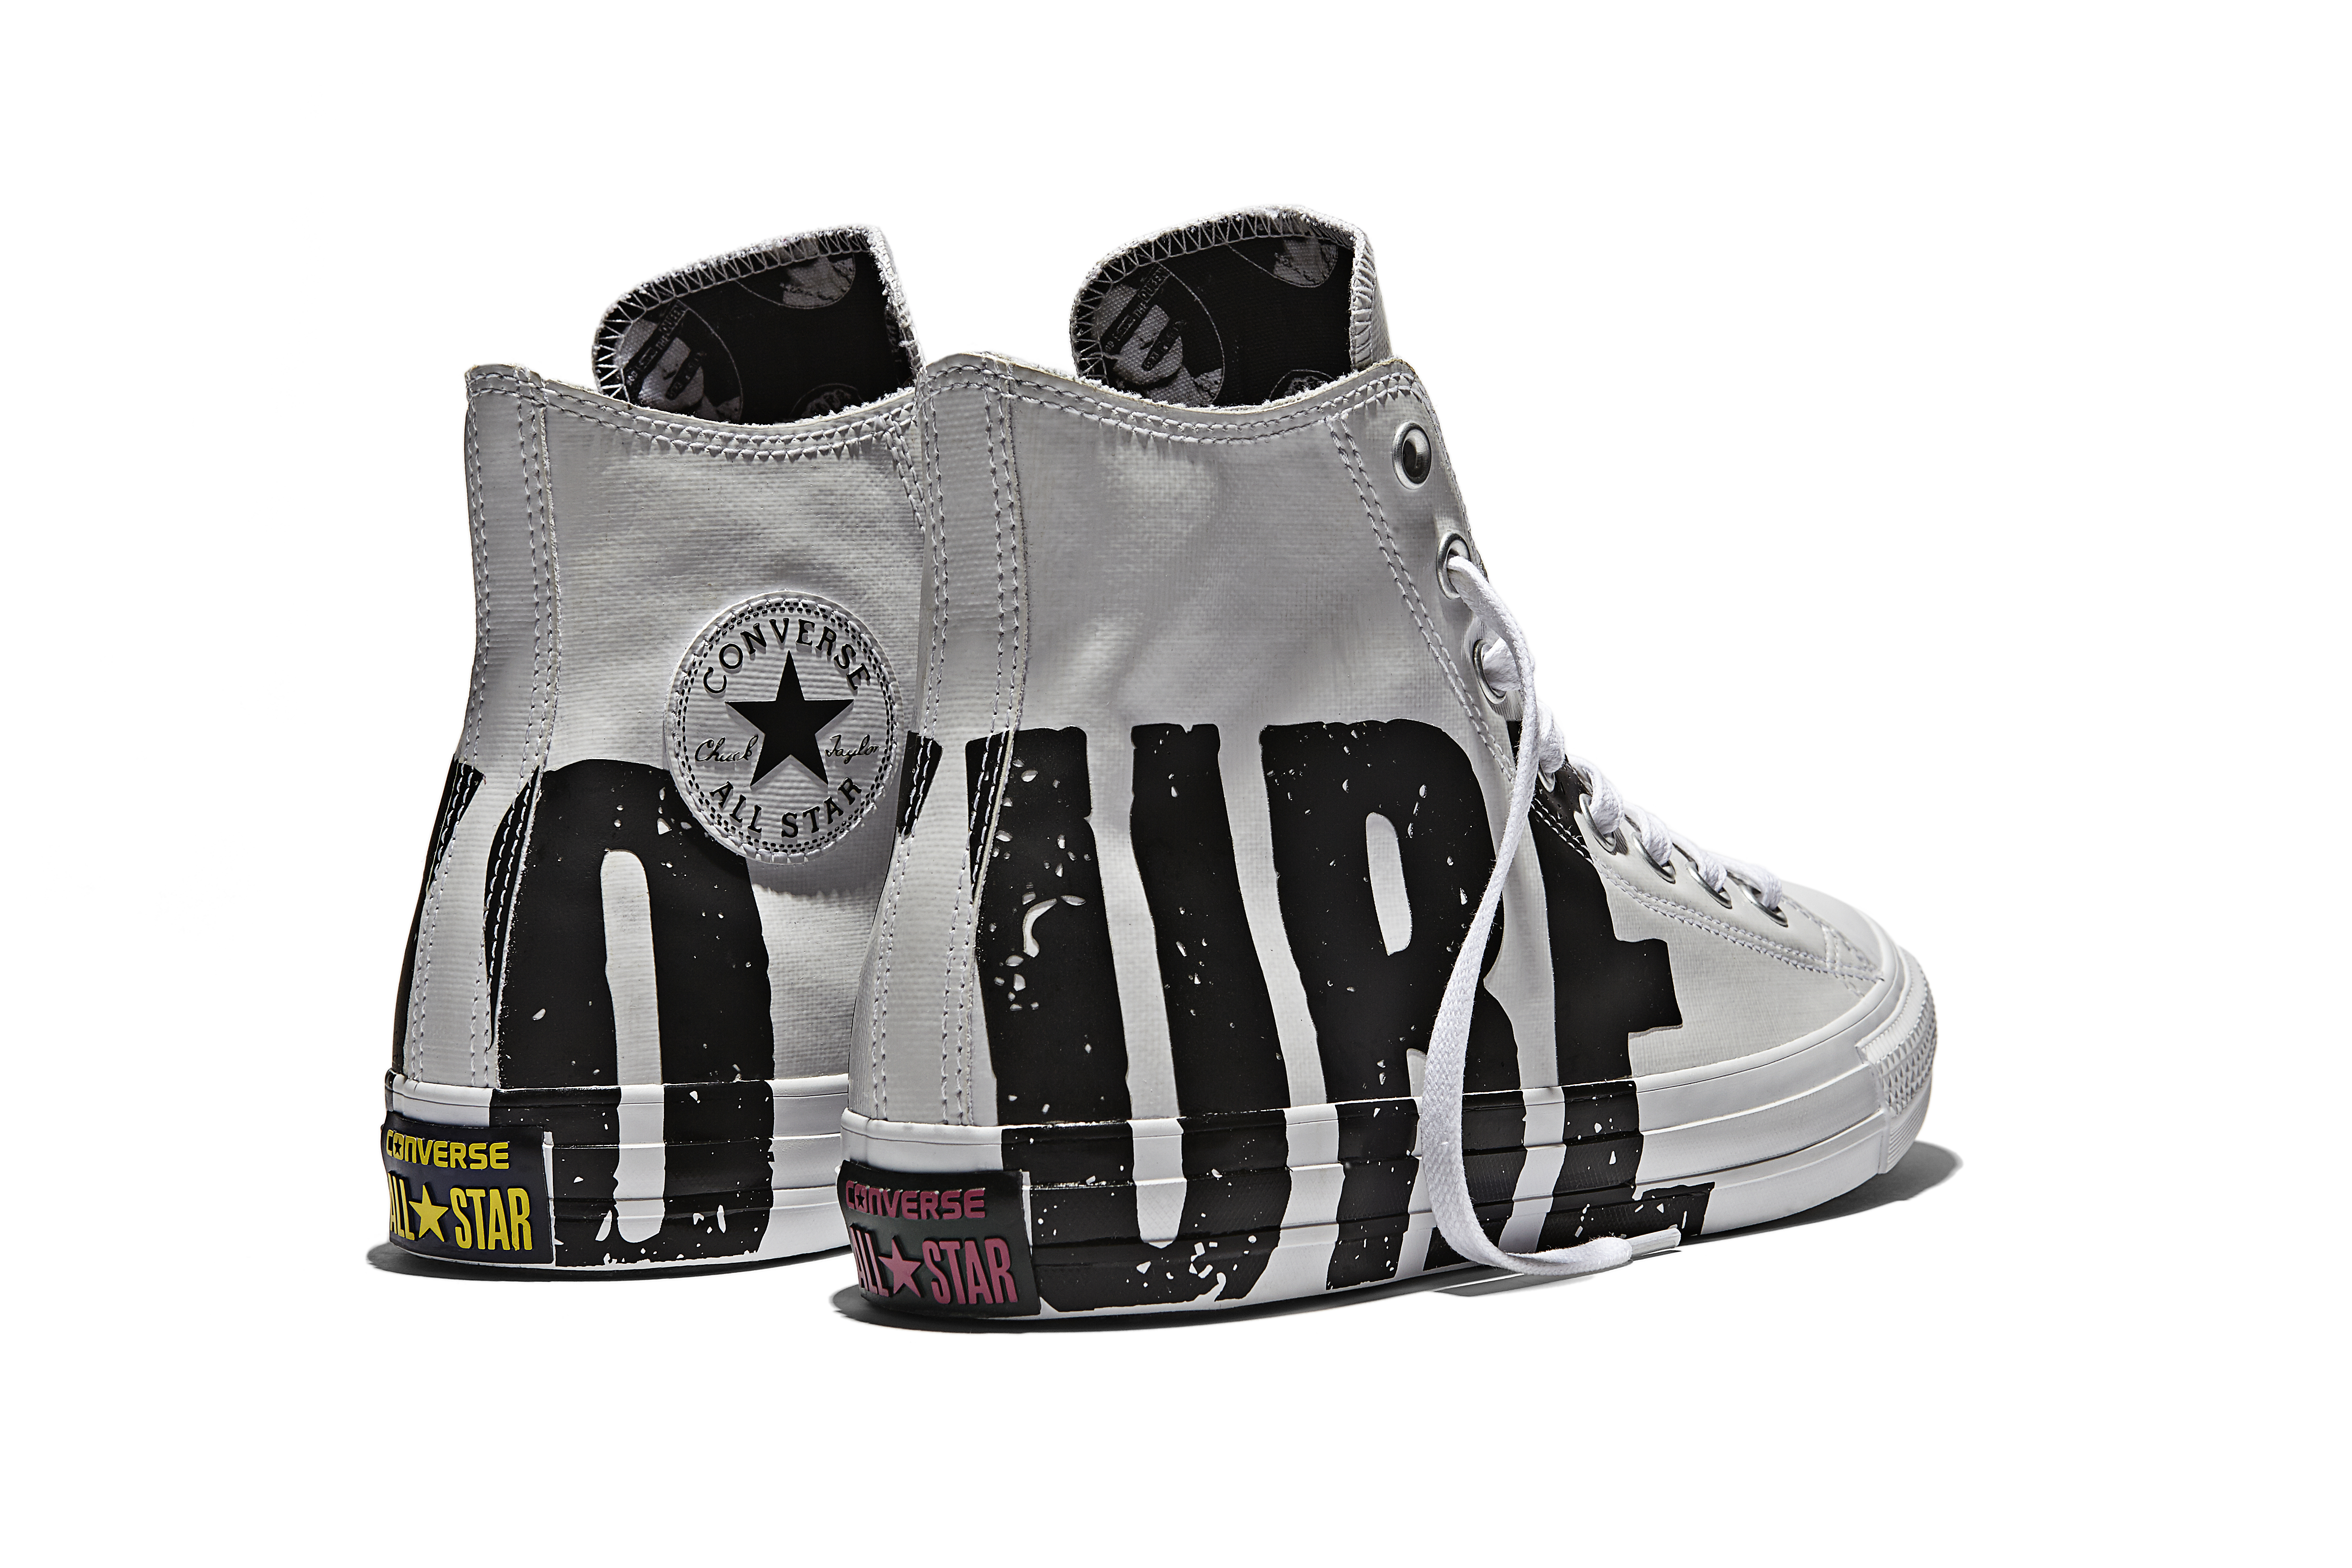 ad95d75c173b The Sex Pistols Collection!  Converse Chuck Taylor All Star Leather Sex Pistols - Pair 33867  Converse Chuck Taylor All Star Rubber Sex Pistols - Back 33866 ...